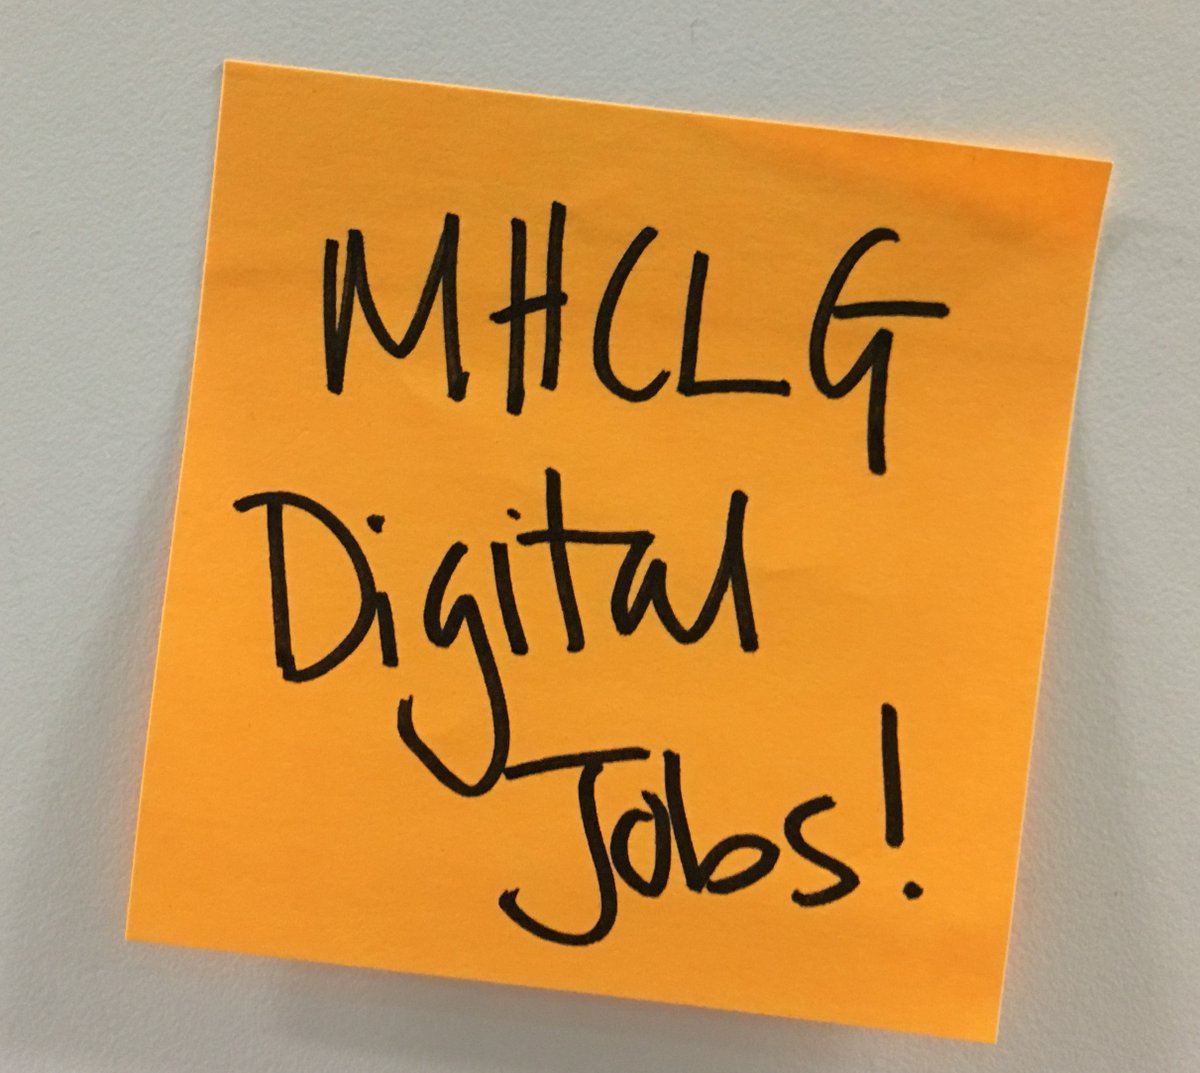 MHCLG looking for DDaT professionals for a new Birmingham HQ